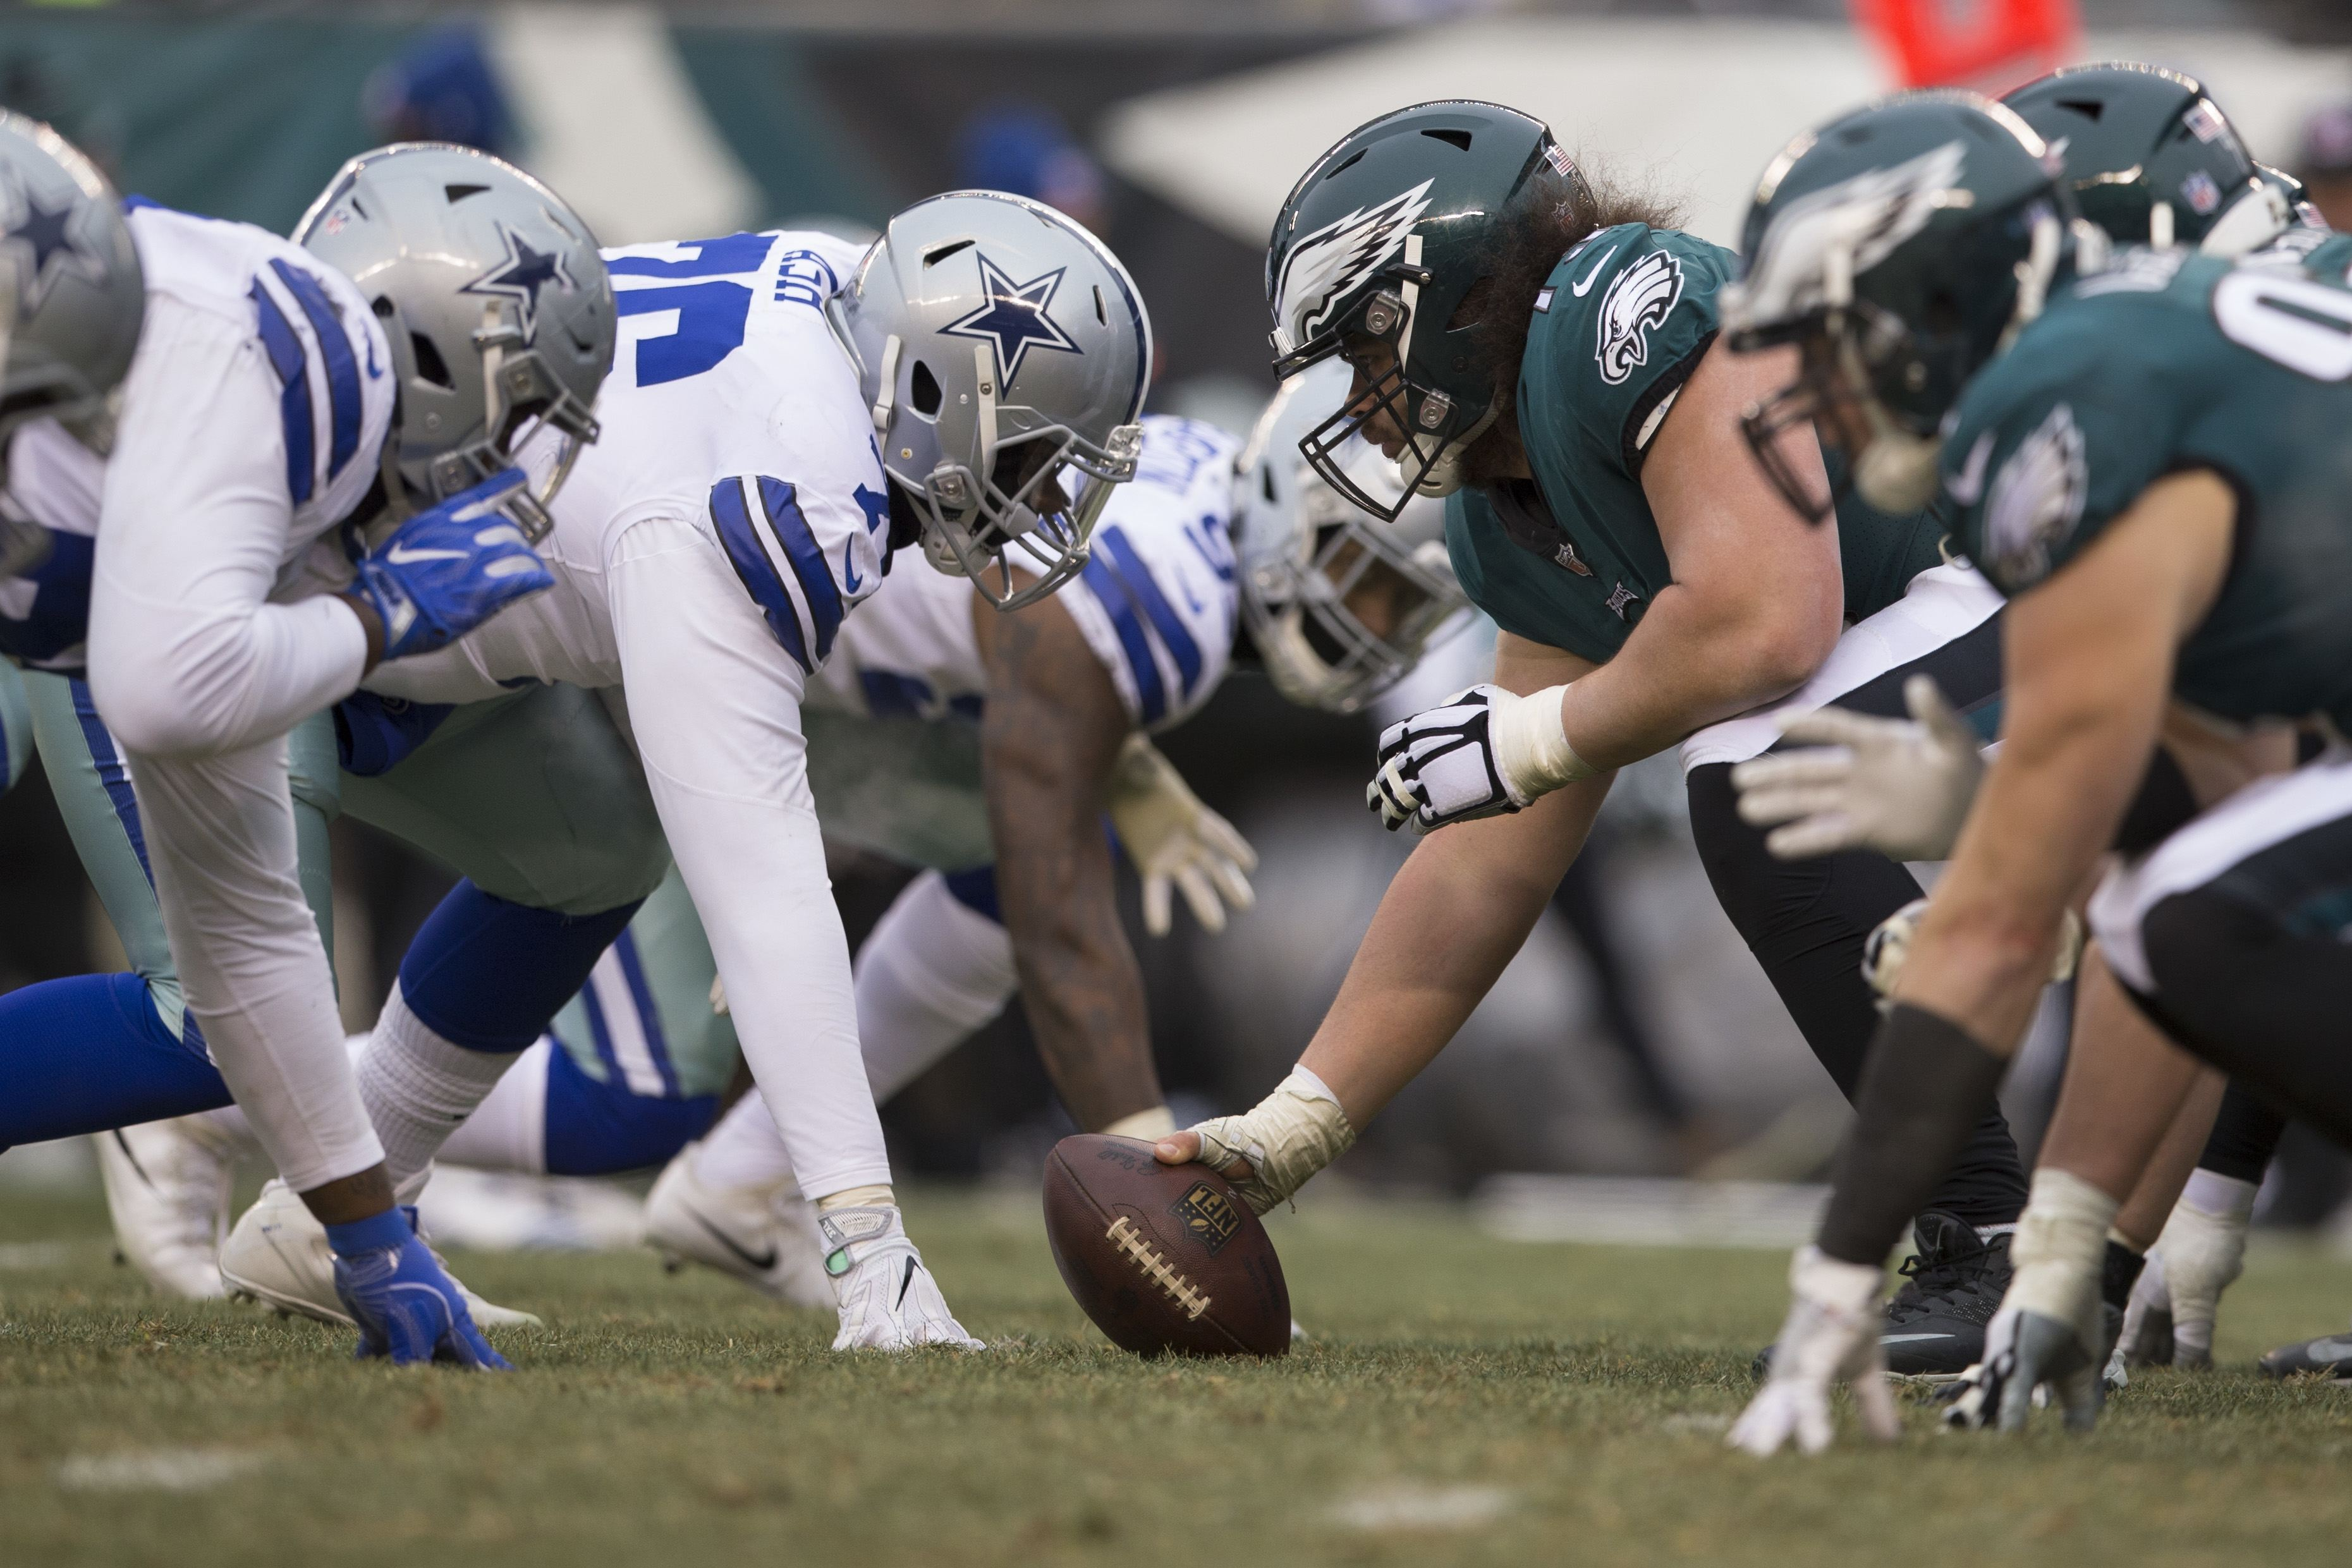 Kevin-brady_game-notes_dal-27-phi-20-desperate-cowboys-get-huge-road-win